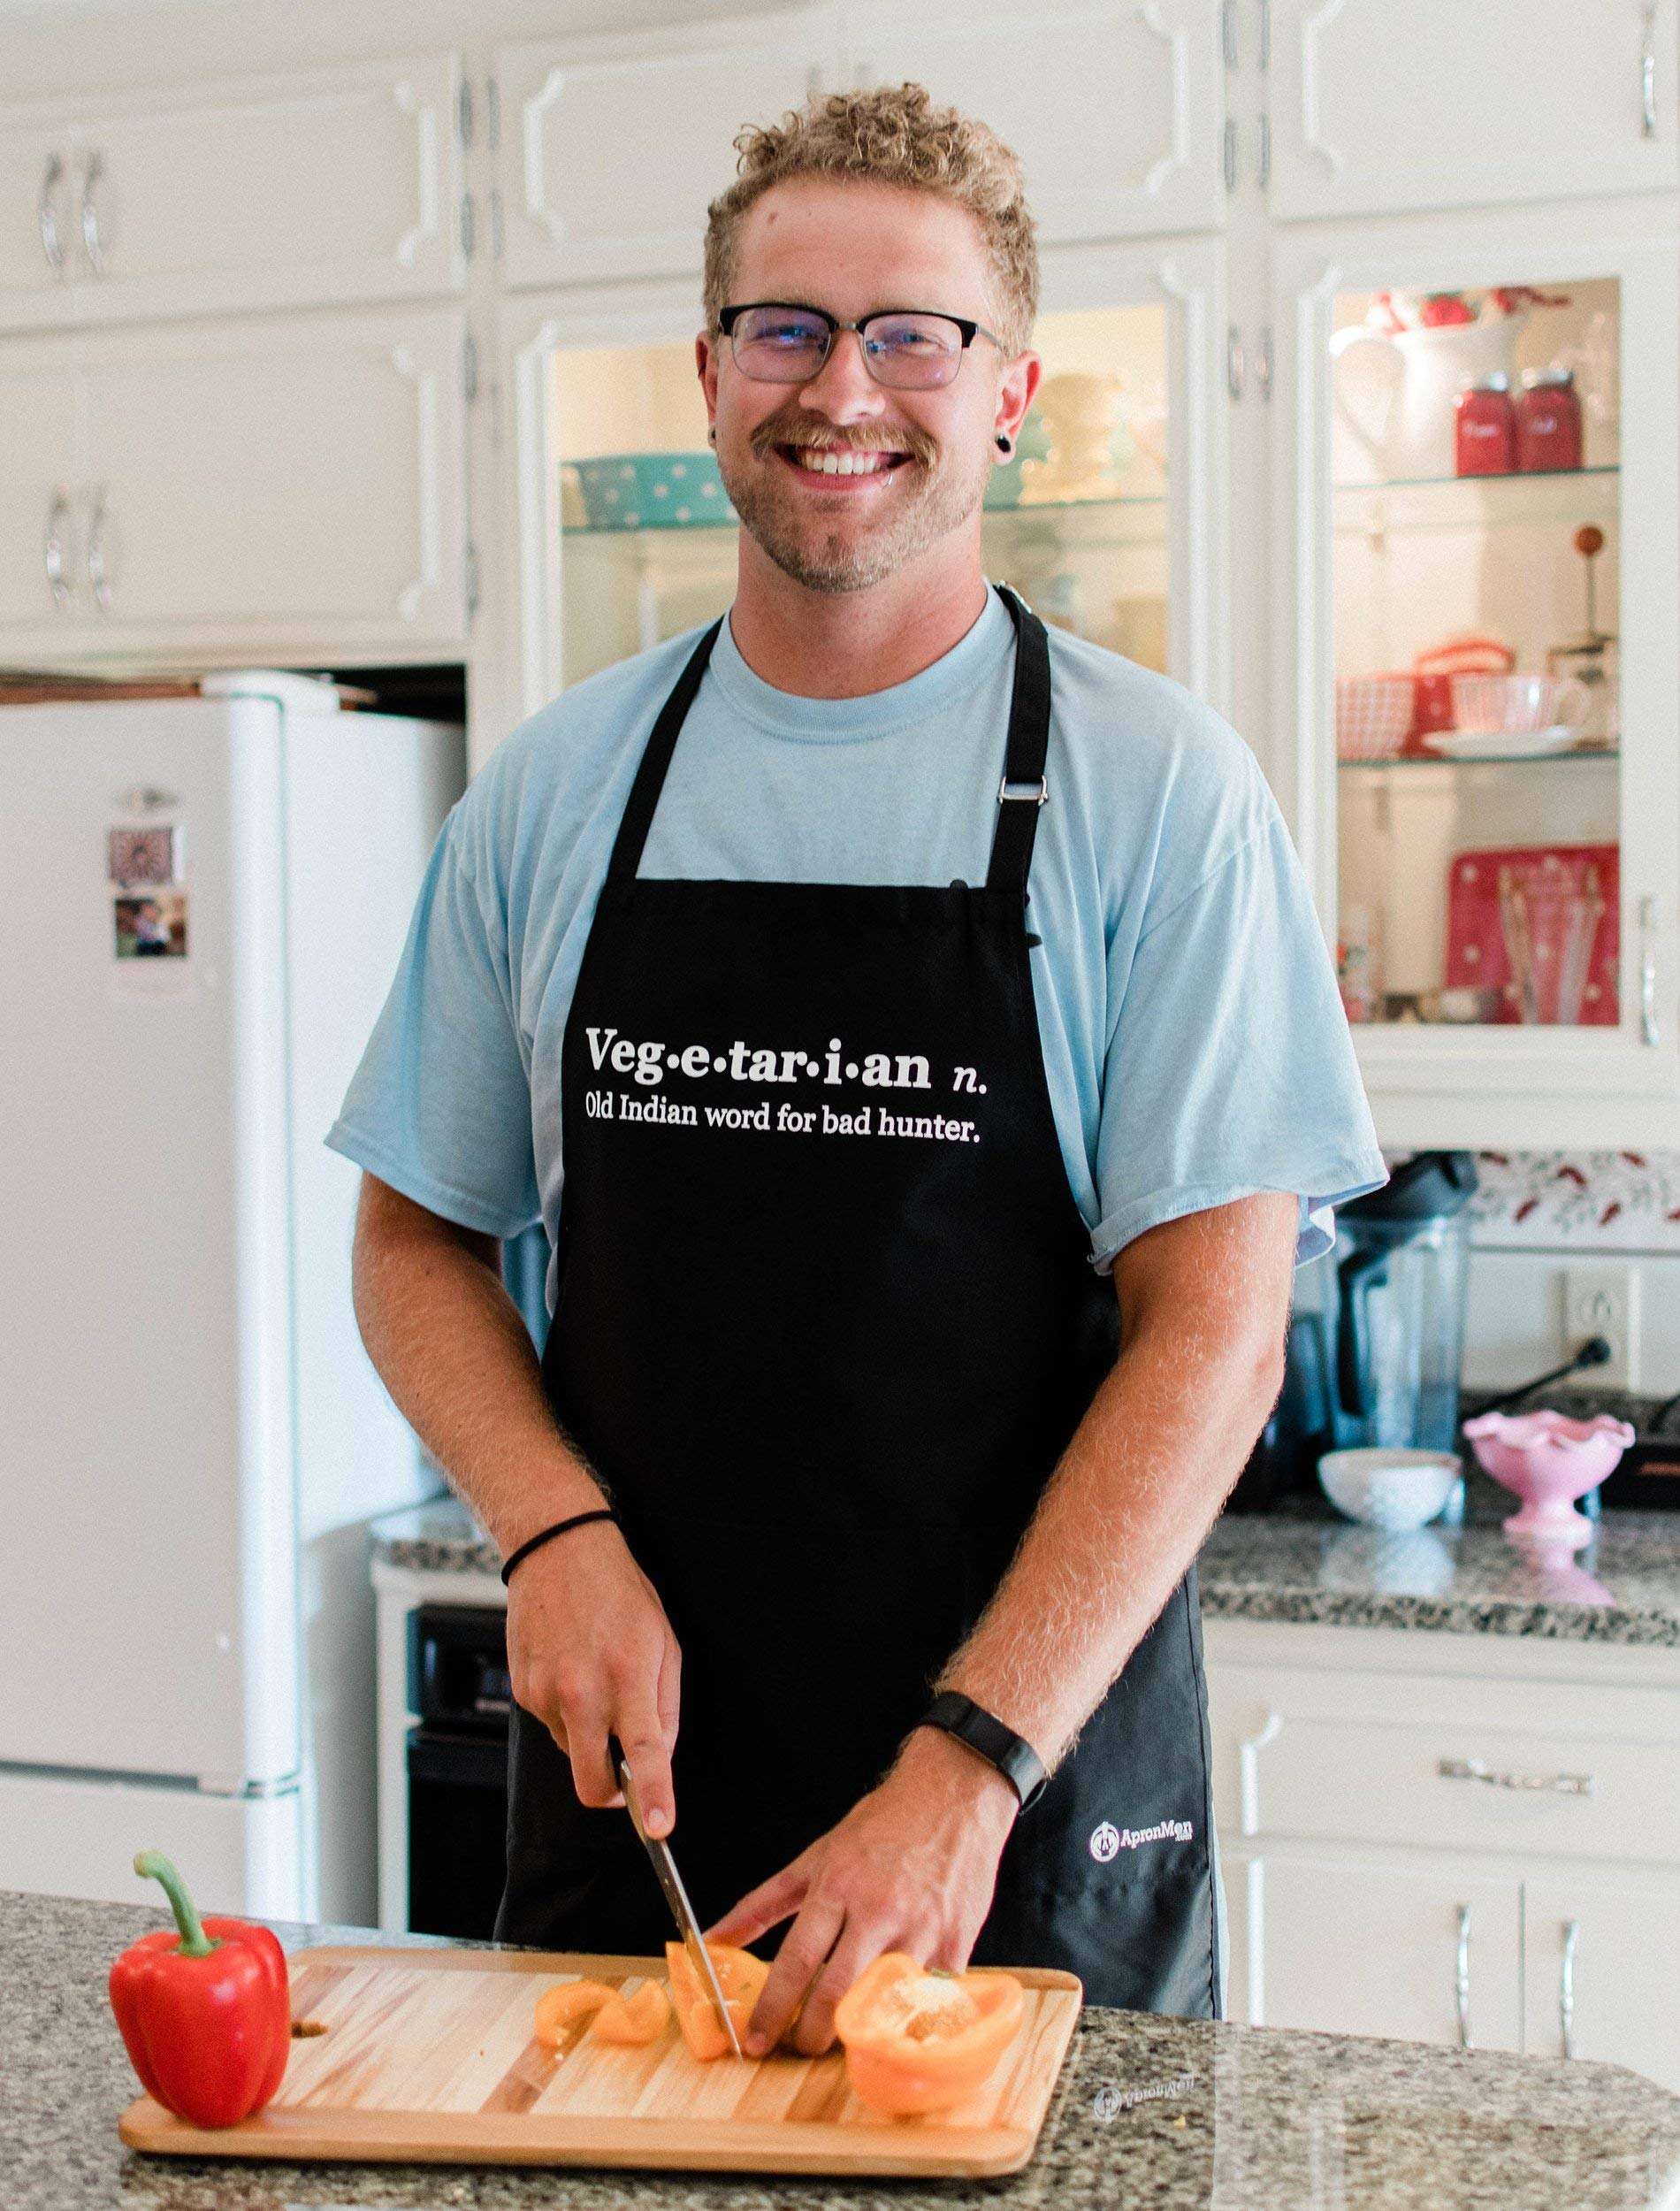 Funny Vegetarian Apron - Old Indian Word for Bad Hunter - BBQ Apron for Dad - 1 Size Fits All Chef Quality Poly/Cotton 4 Utility Pockets, Adjustable Neck and Extra Long Waist Ties by ApronMen (Image #3)